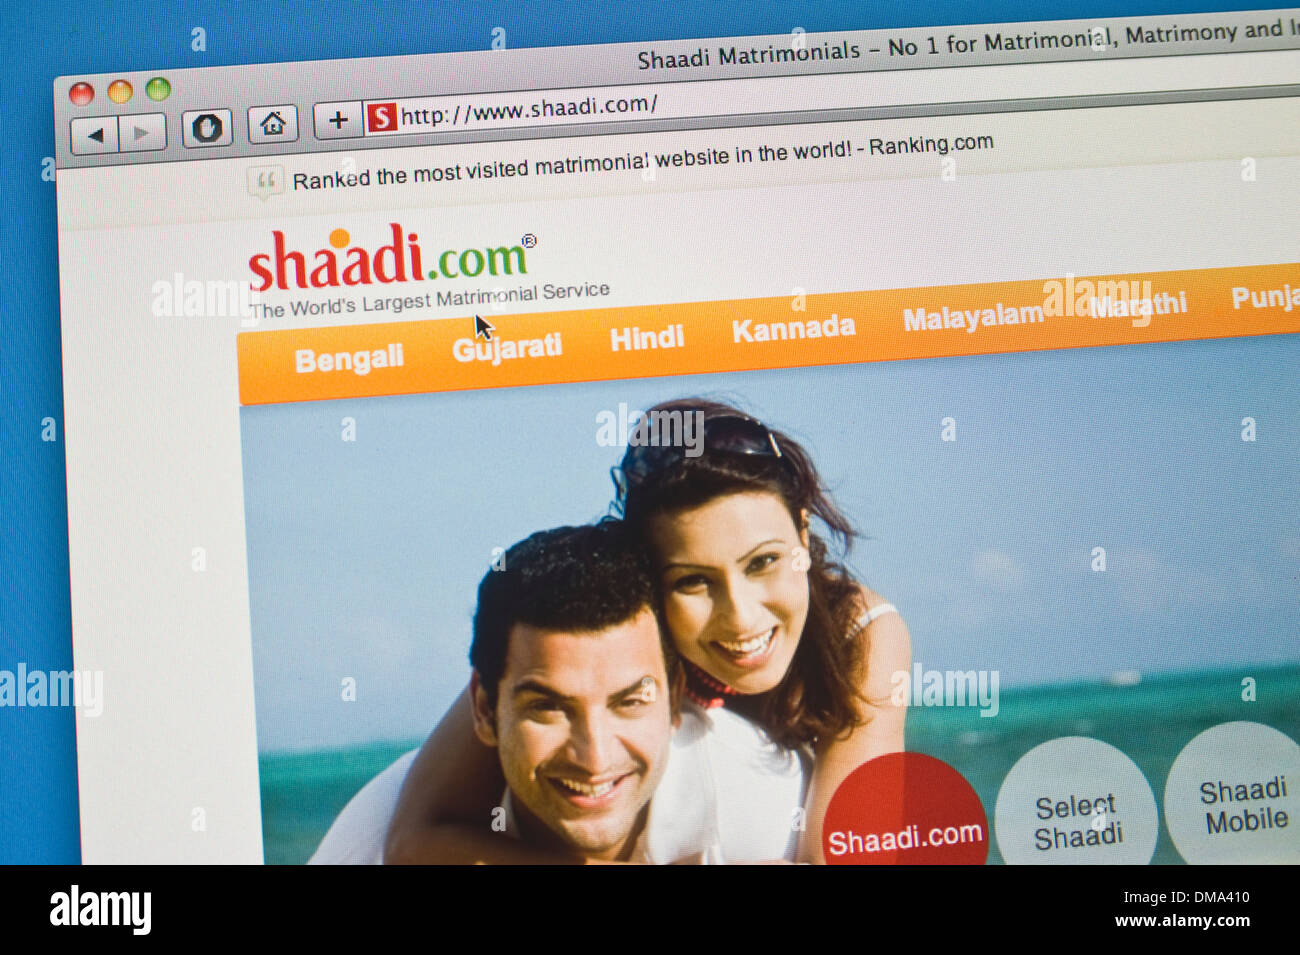 shaadi dating site